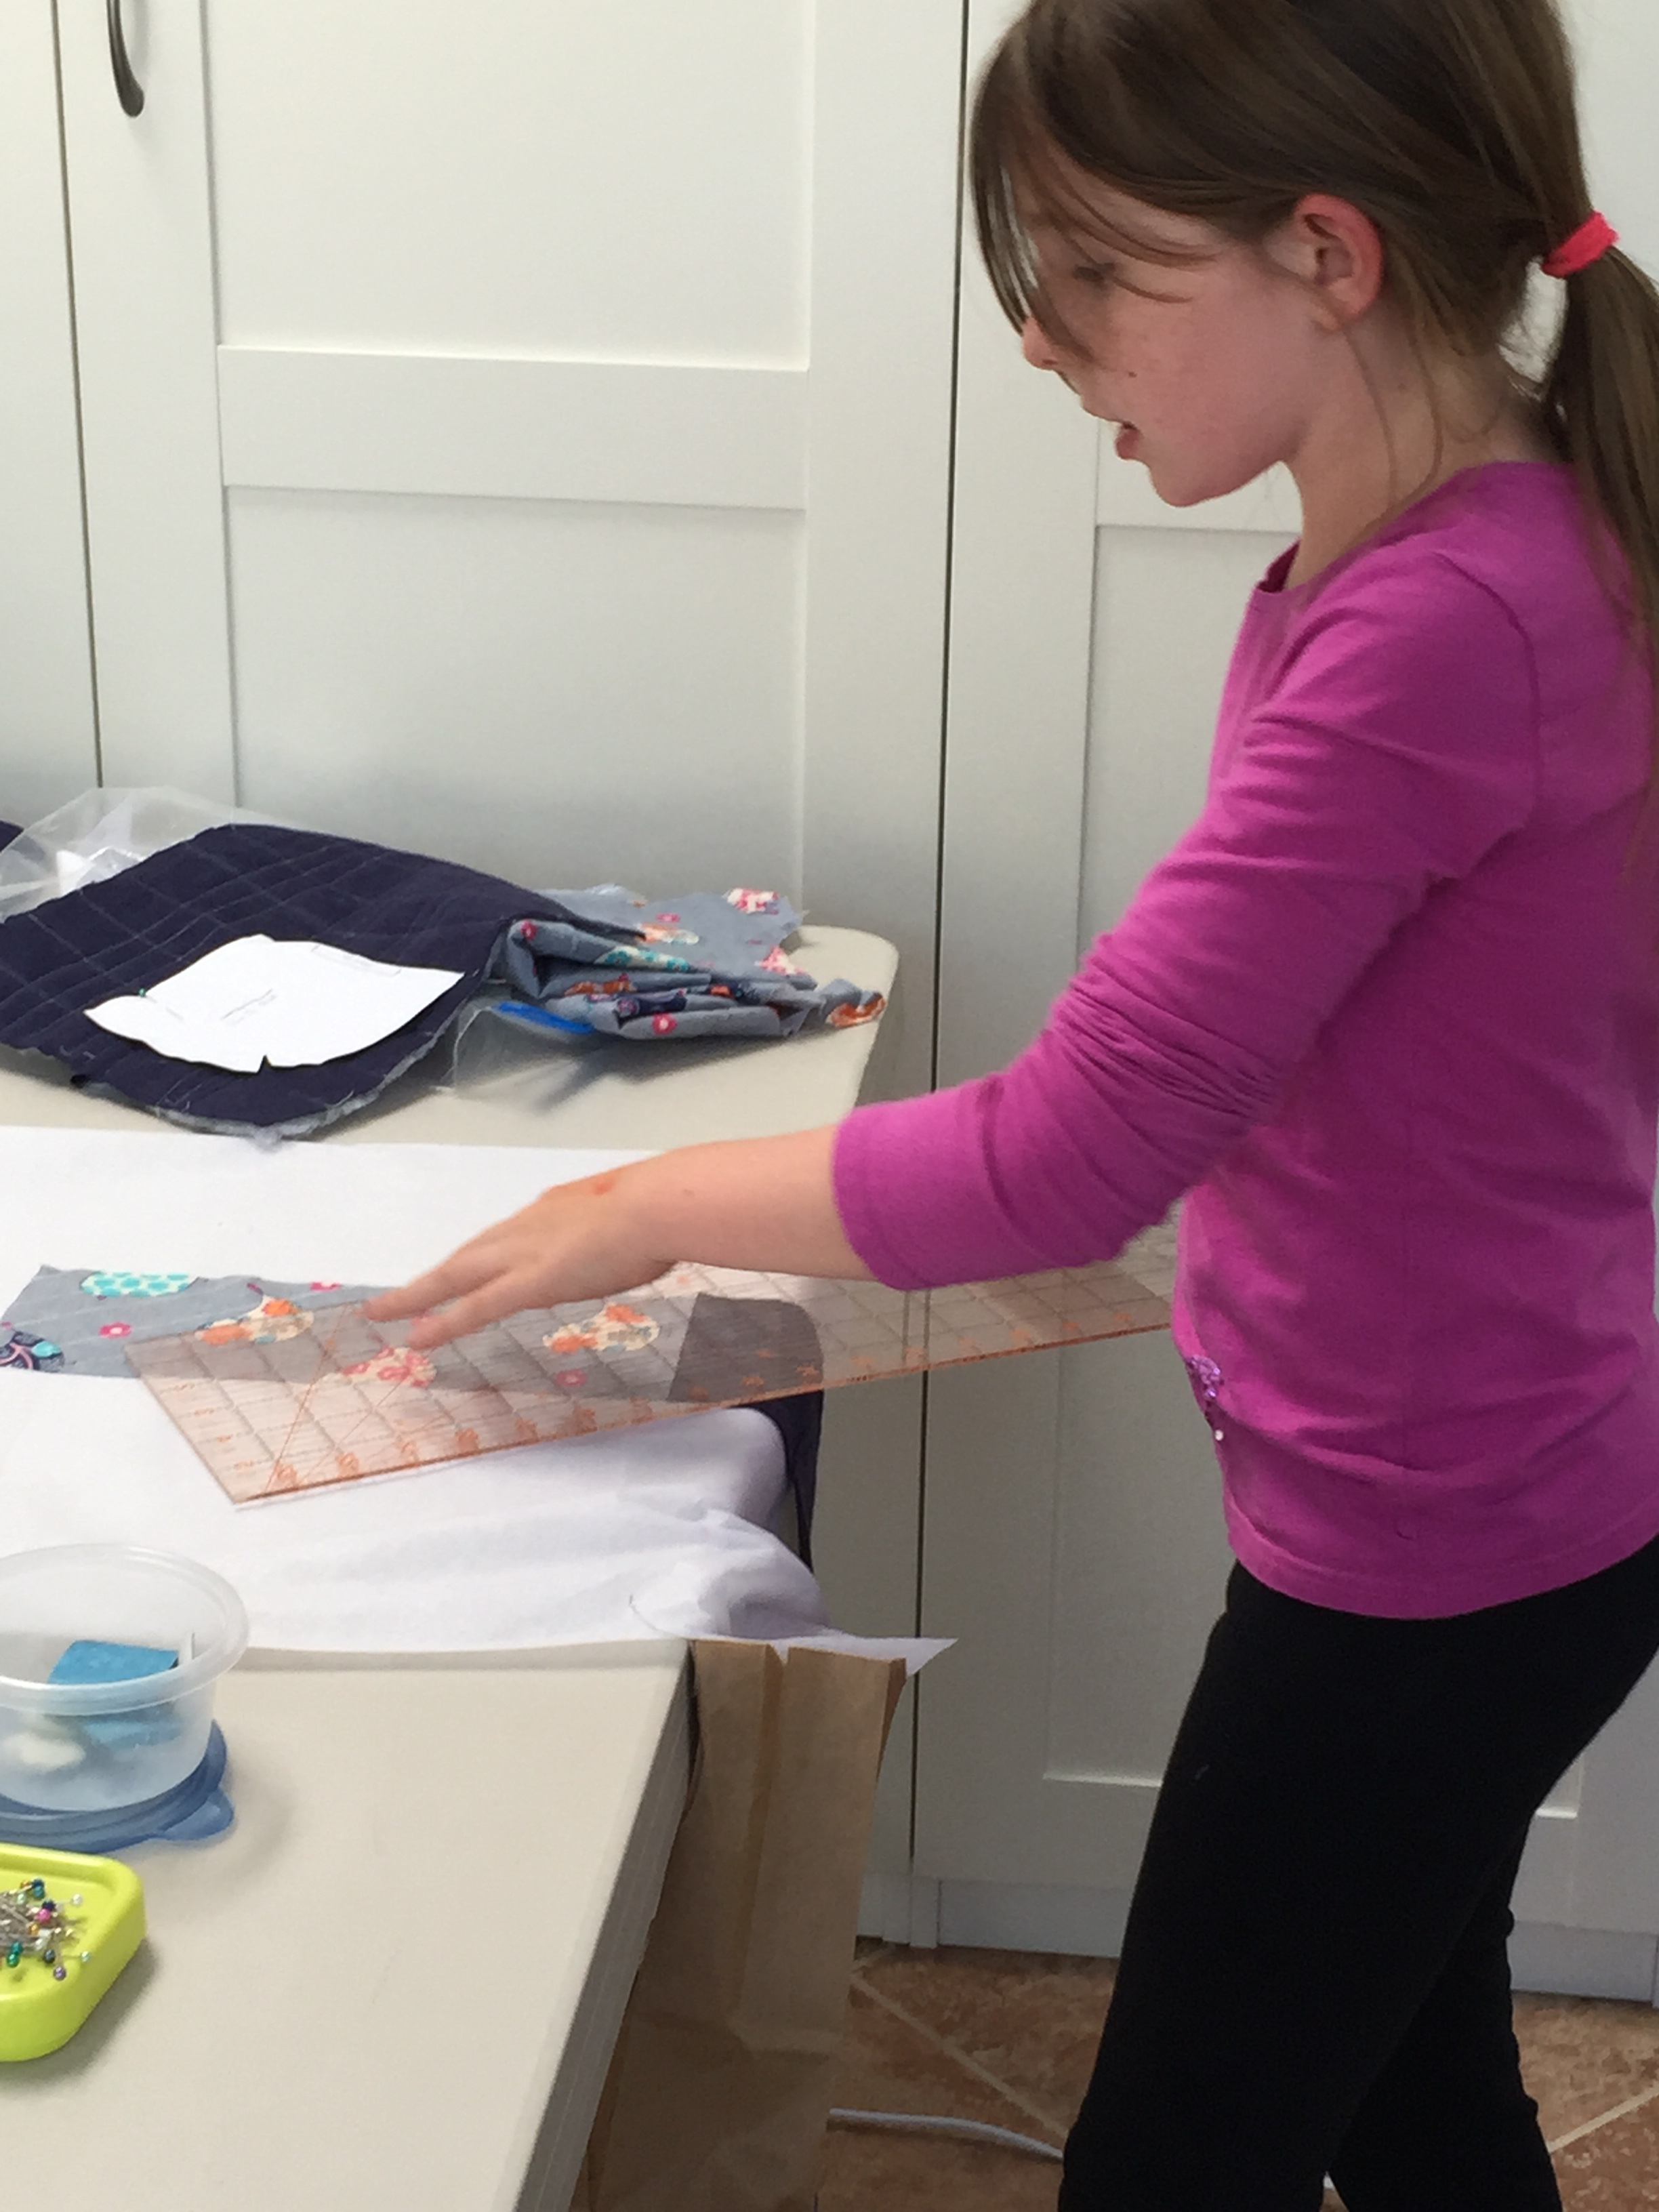 Marking fabric for quilting.